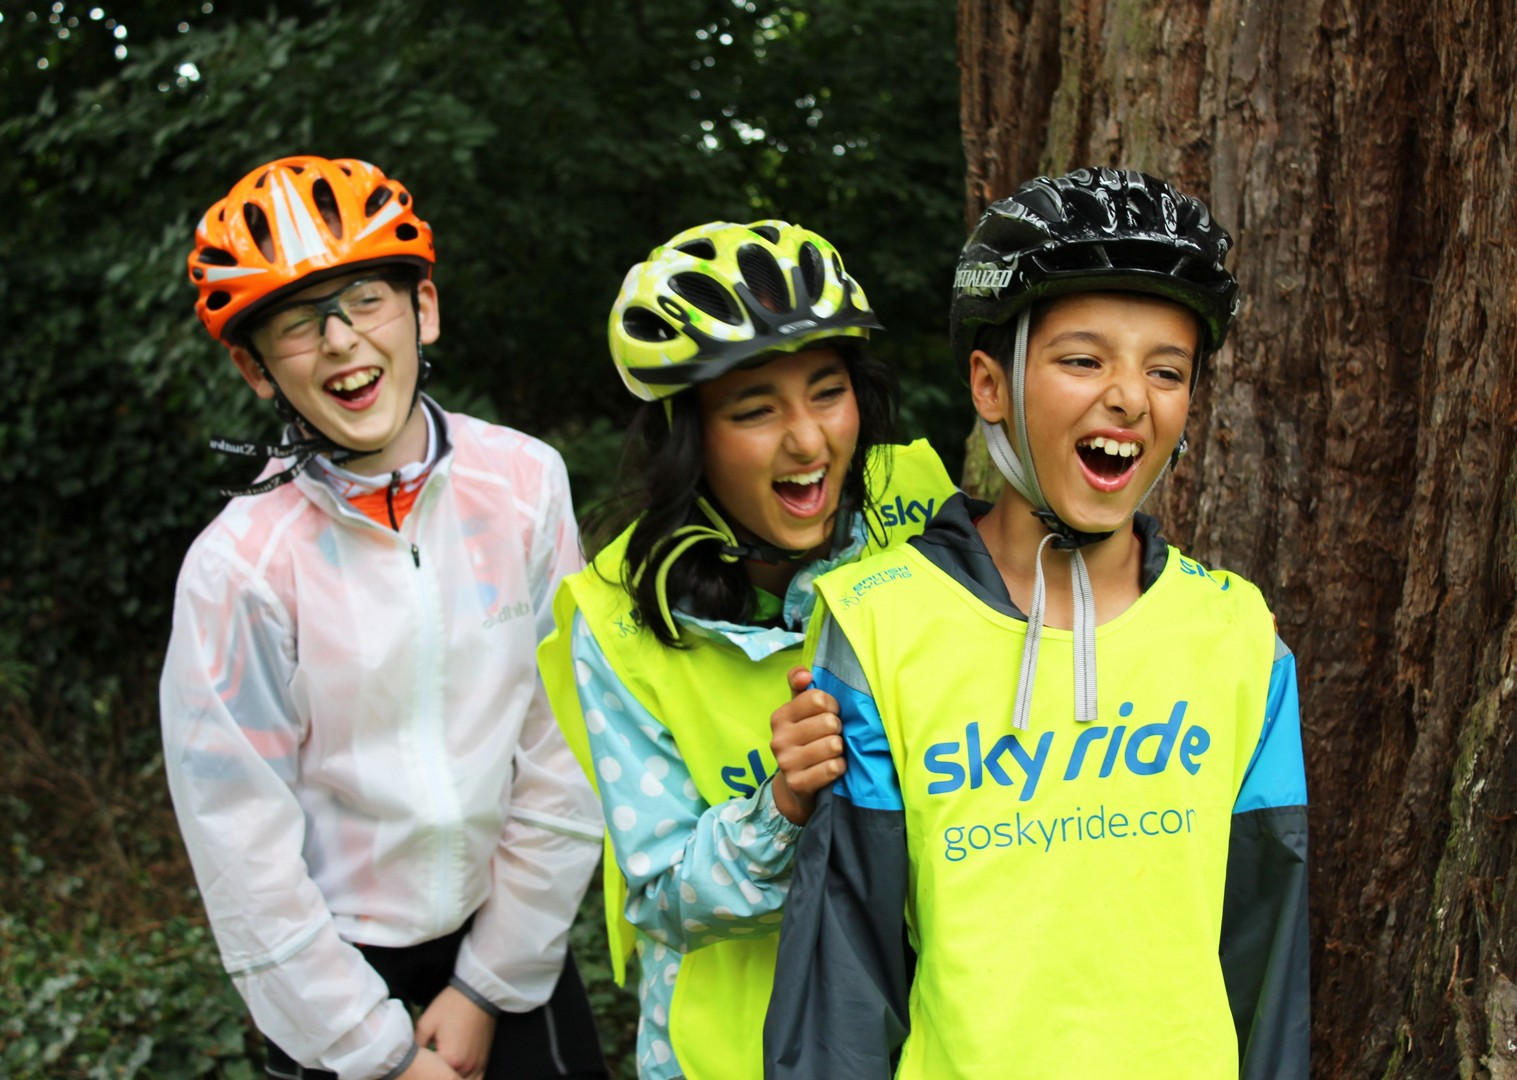 Family-holiday-hadrians-cycleway-self-guided-happy.jpg - UK - Hadrian's Cycleway - Family Cycling